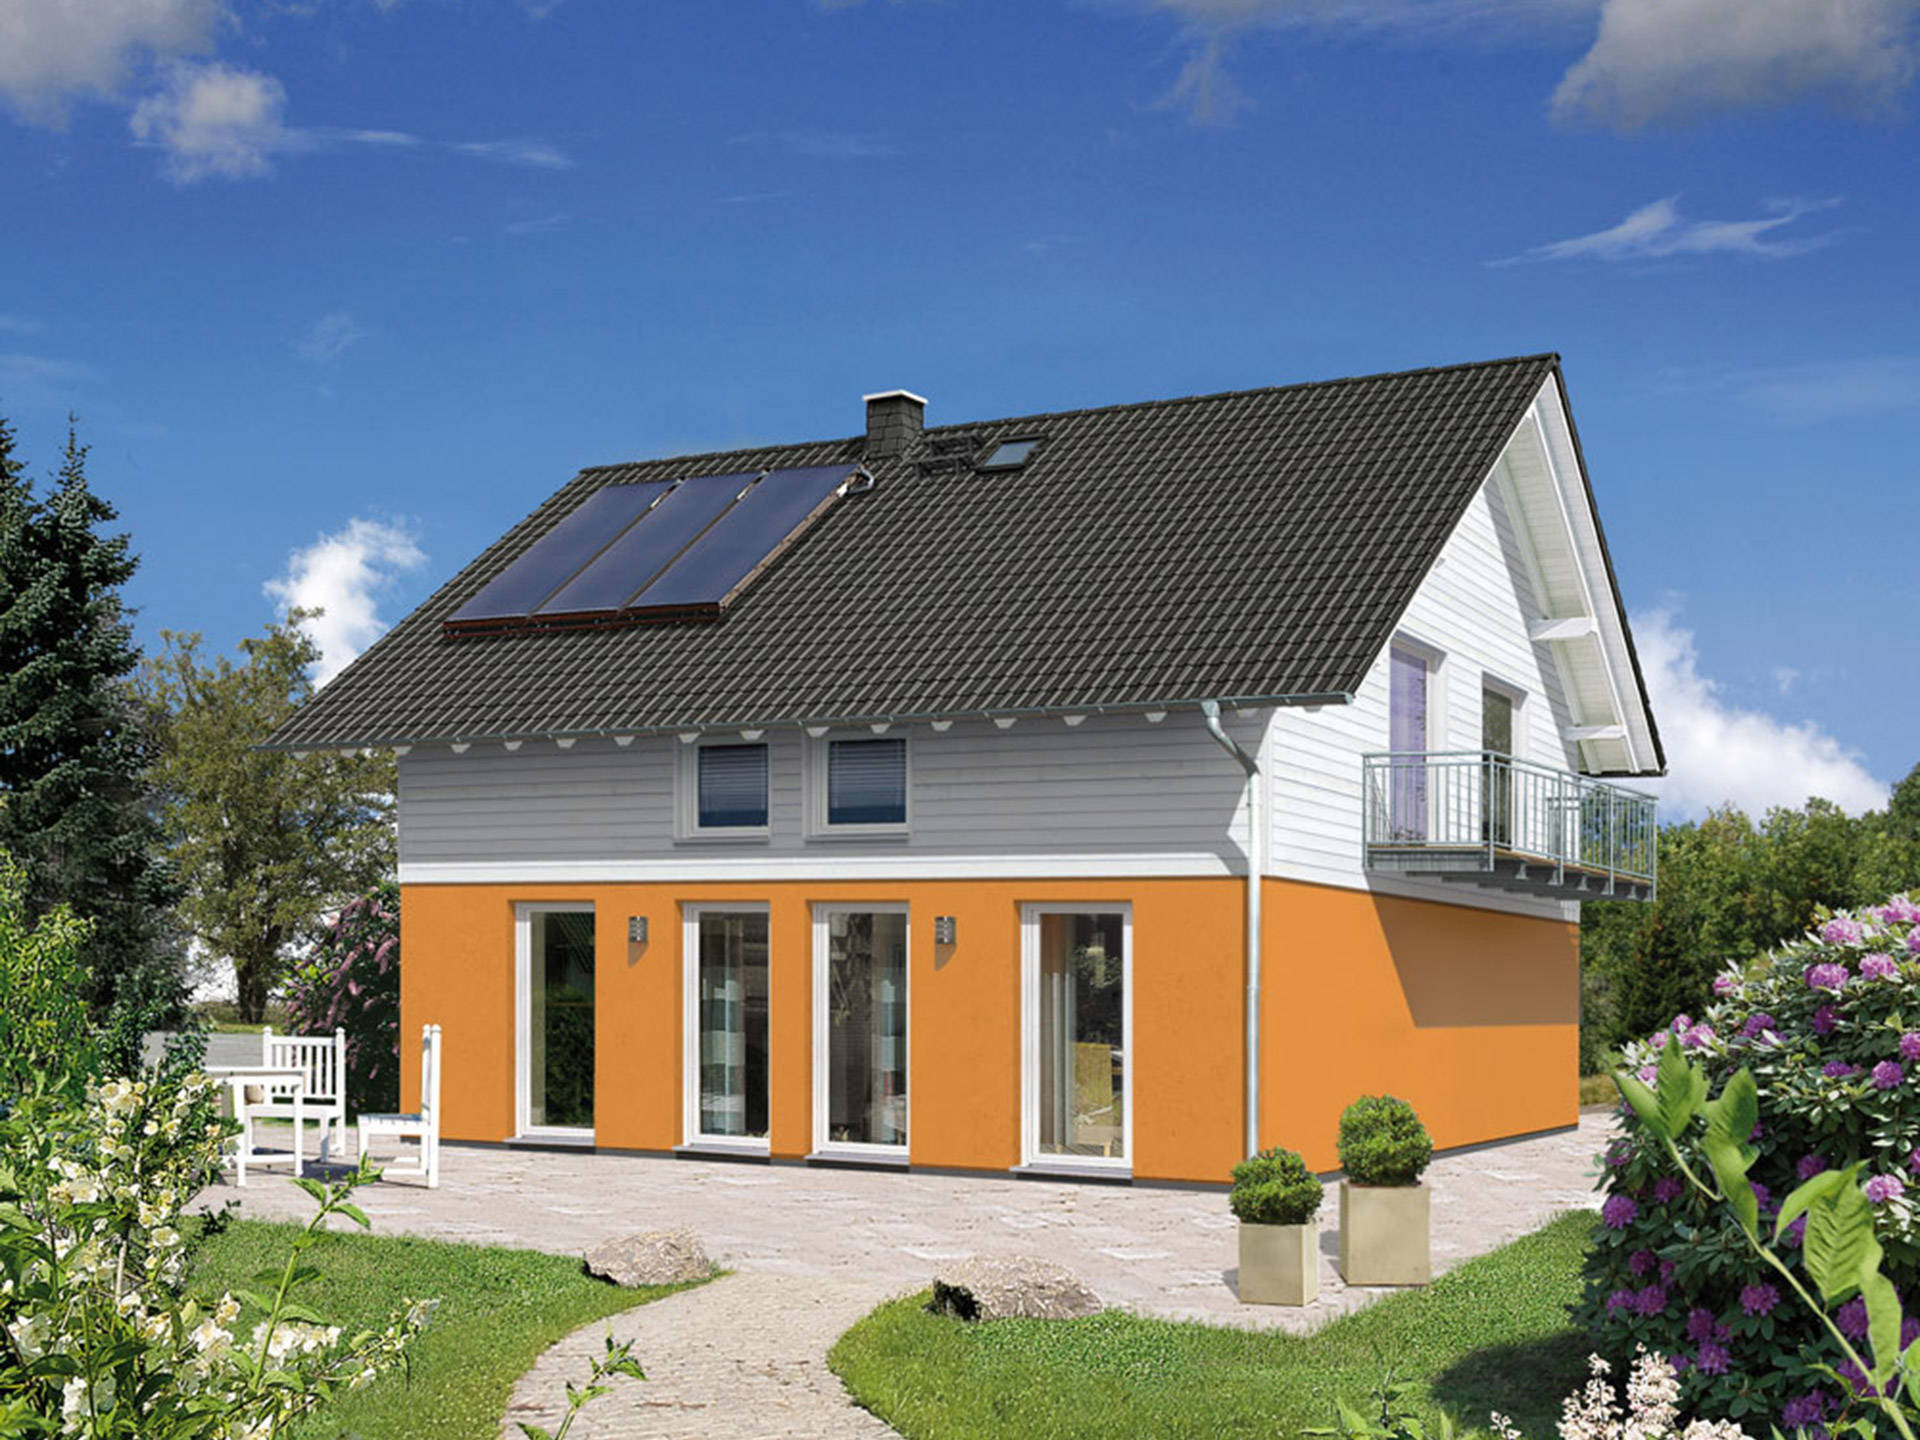 Haus flair 125 s ddeutschland town country haus for Haus mit flair